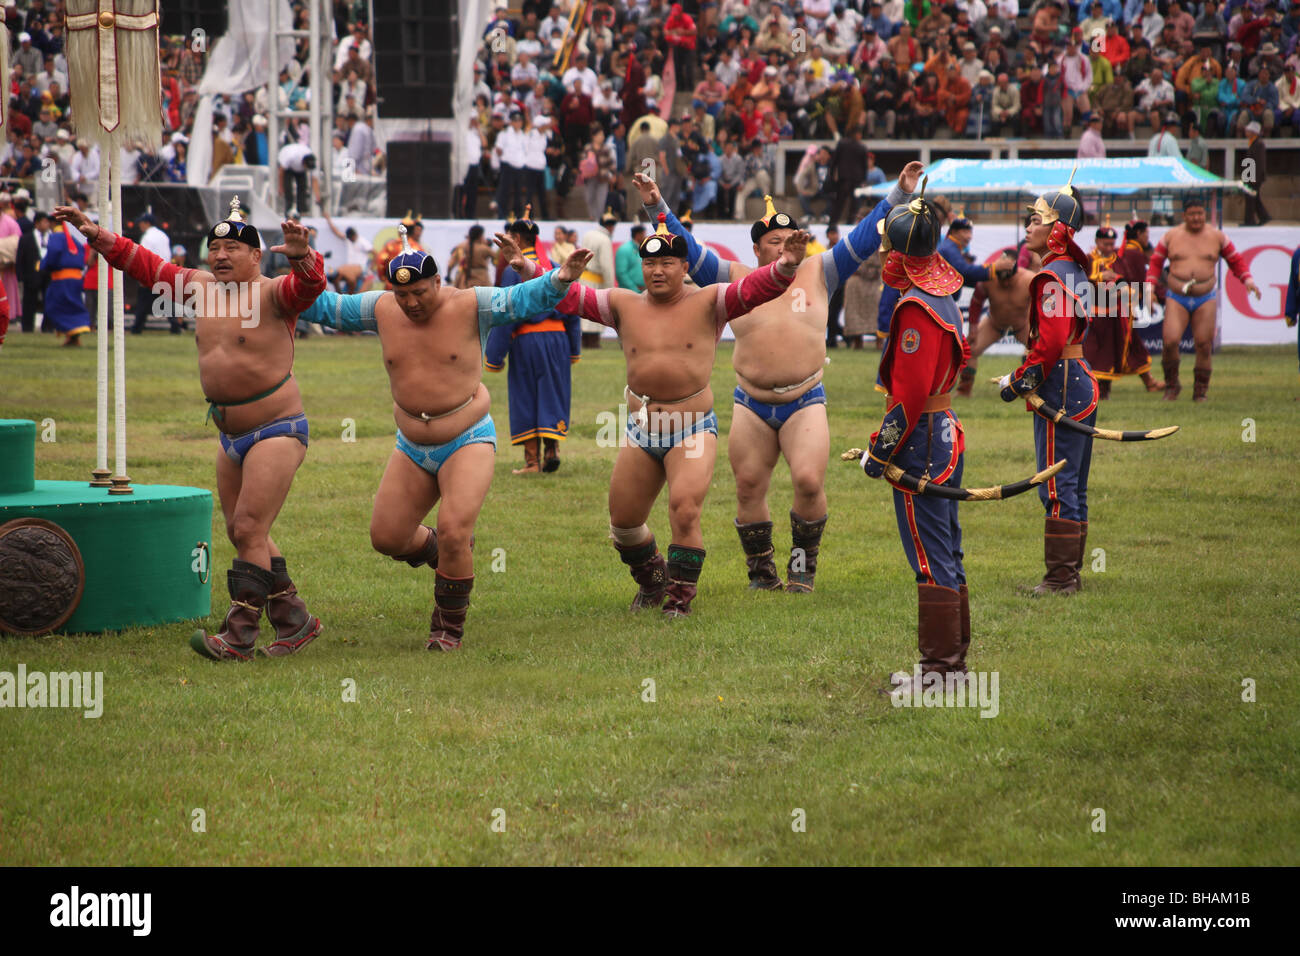 Openning ceremony of the 2009 Naadam Festival, Mongolia - Stock Image